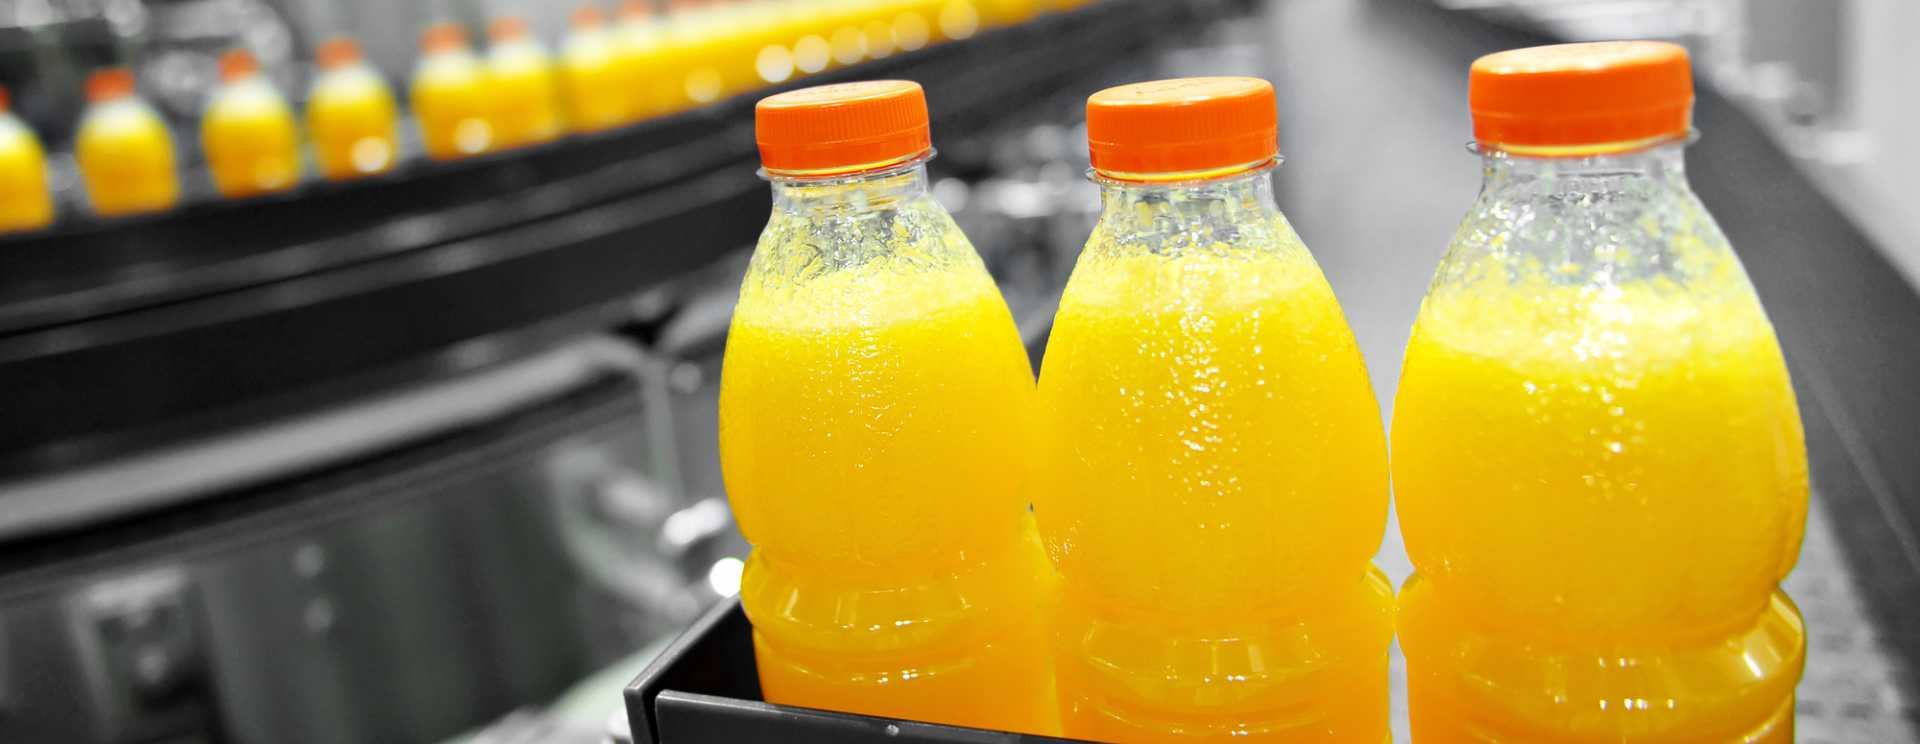 CROP - Orange Juice Factory - image courtesy of Depositphotos.